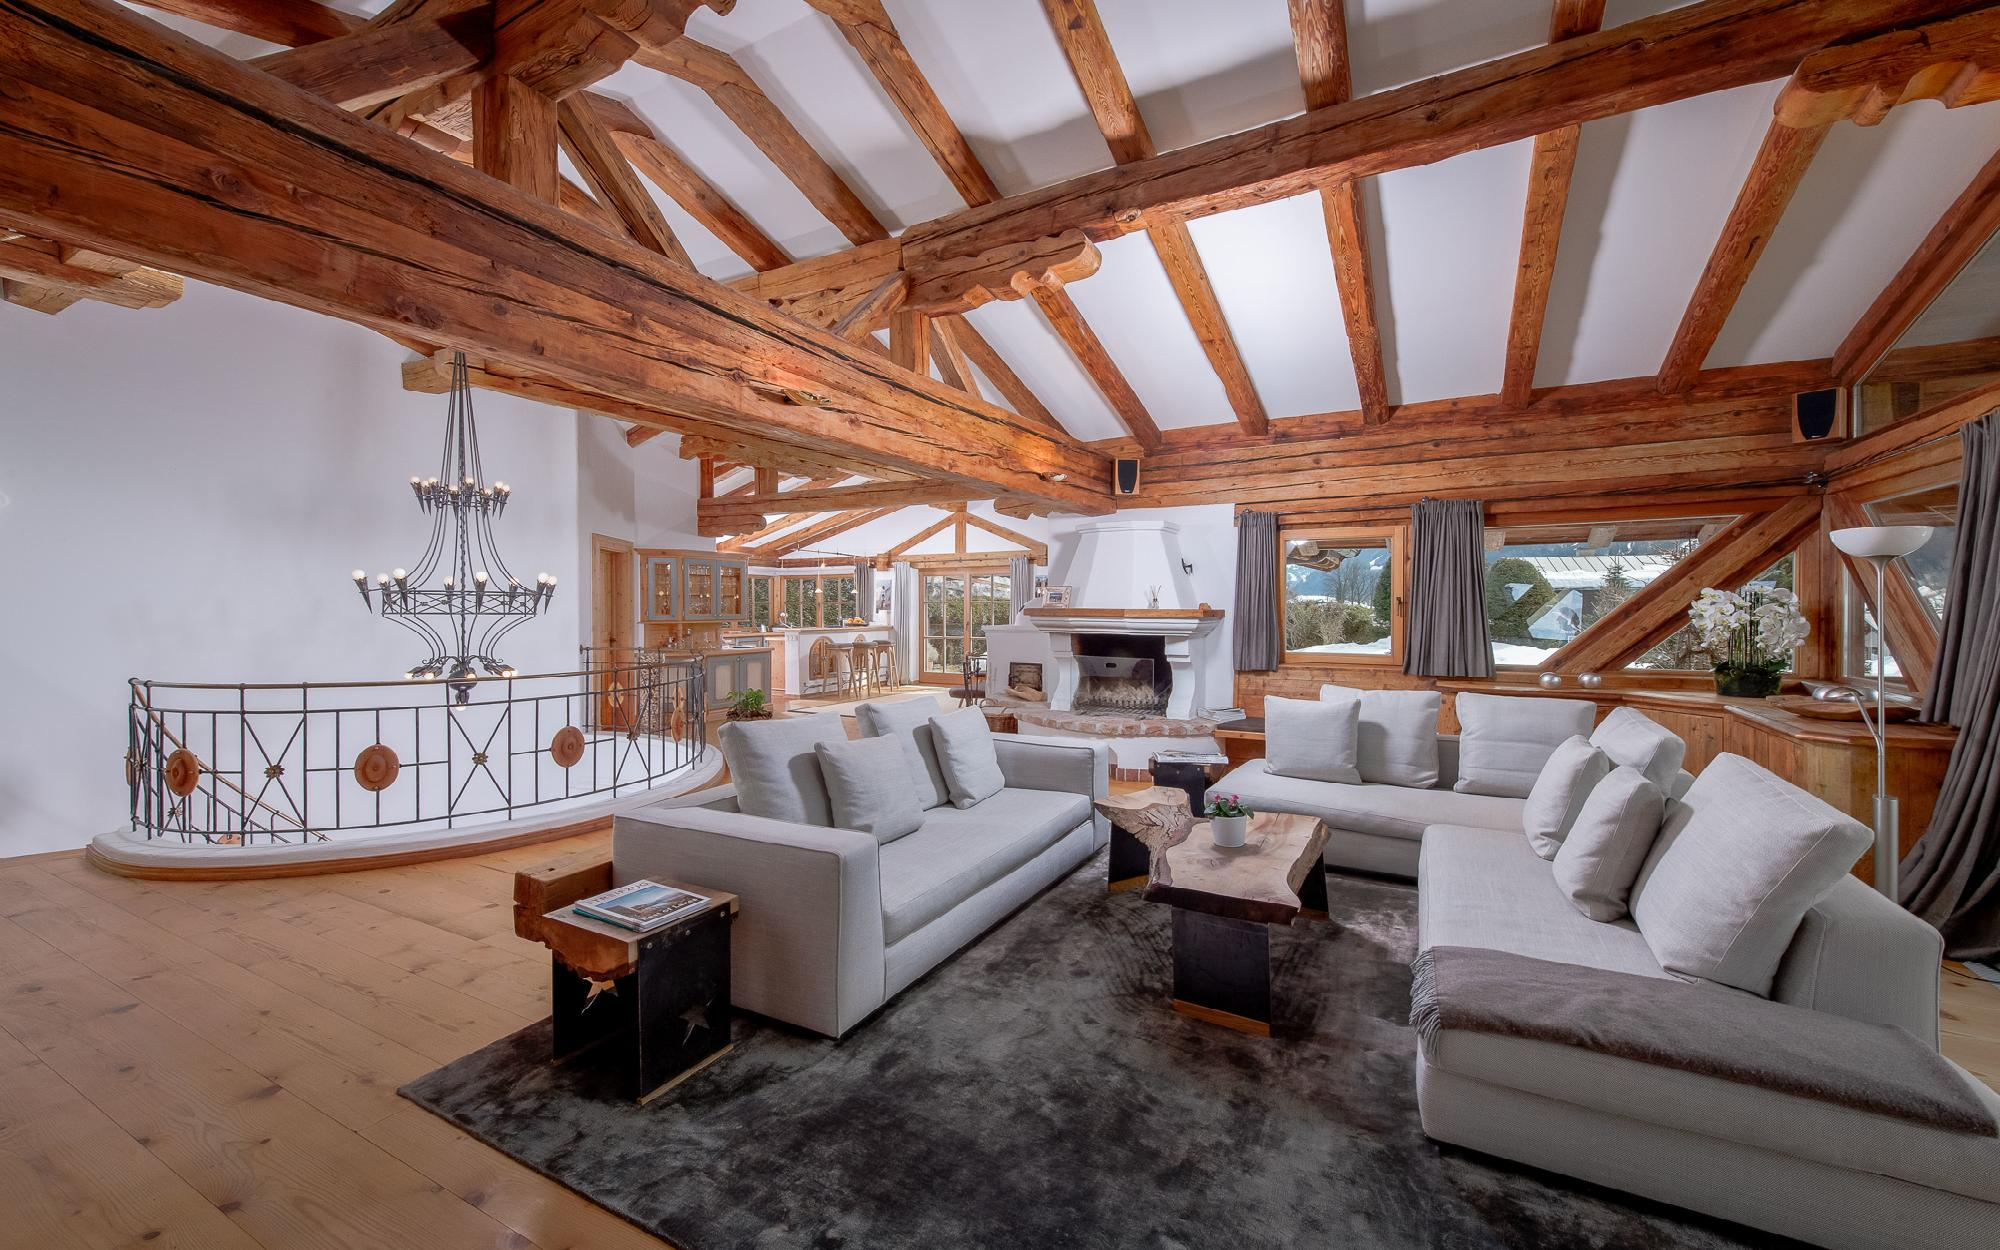 Enchanting Alpine chalet in an excellent location of Kitzbühel for Sale - Austria - Tirol